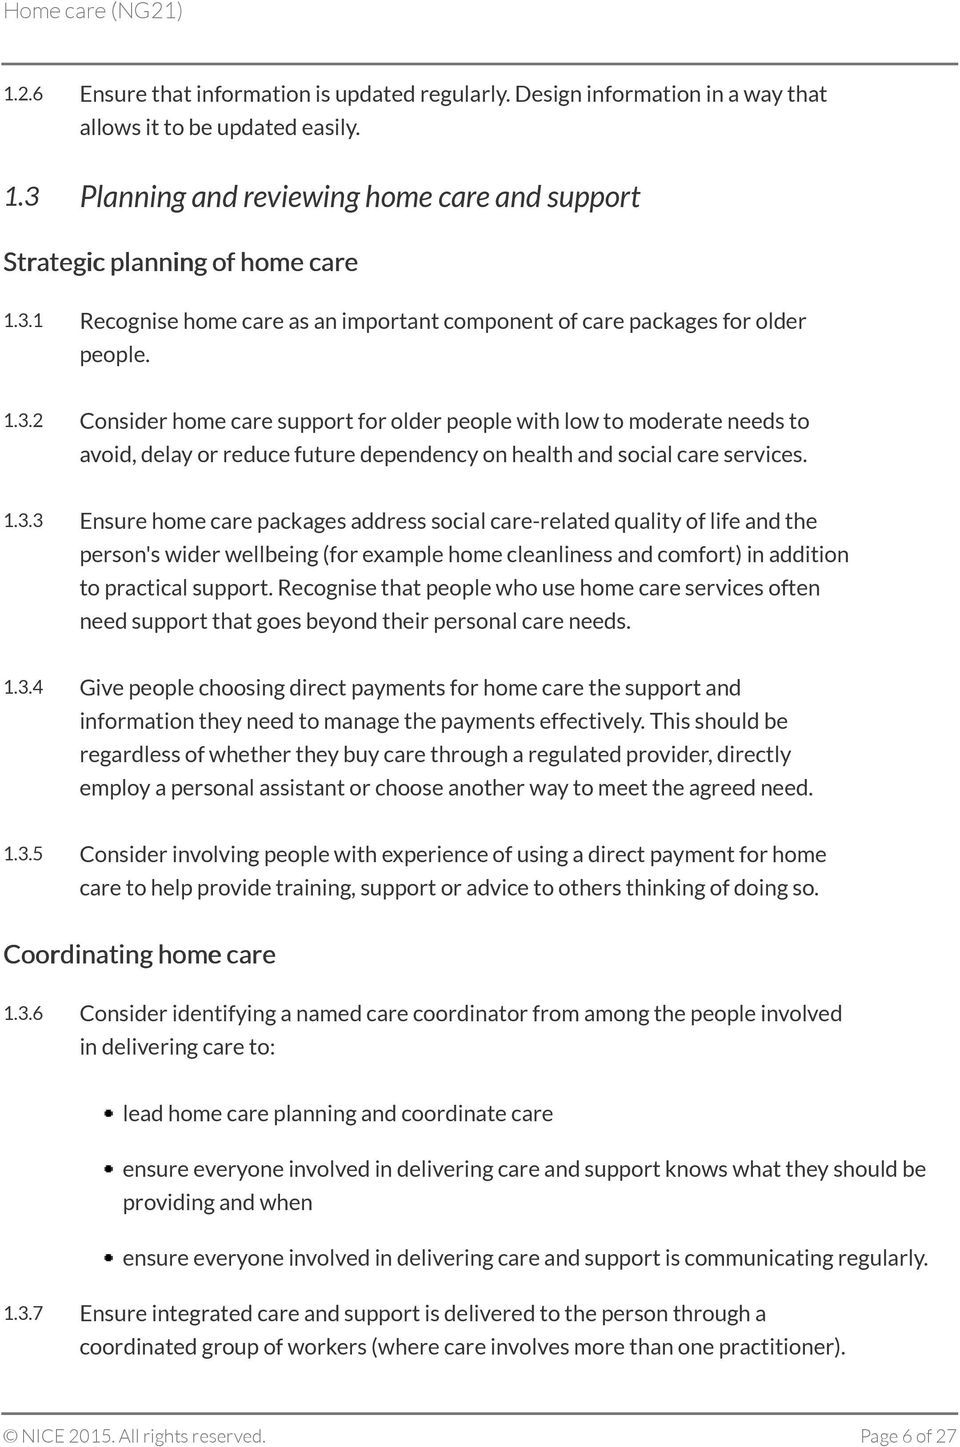 1.3.3 Ensure home care packages address social care-related quality of life and the person's wider wellbeing (for example home cleanliness and comfort) in addition to practical support.